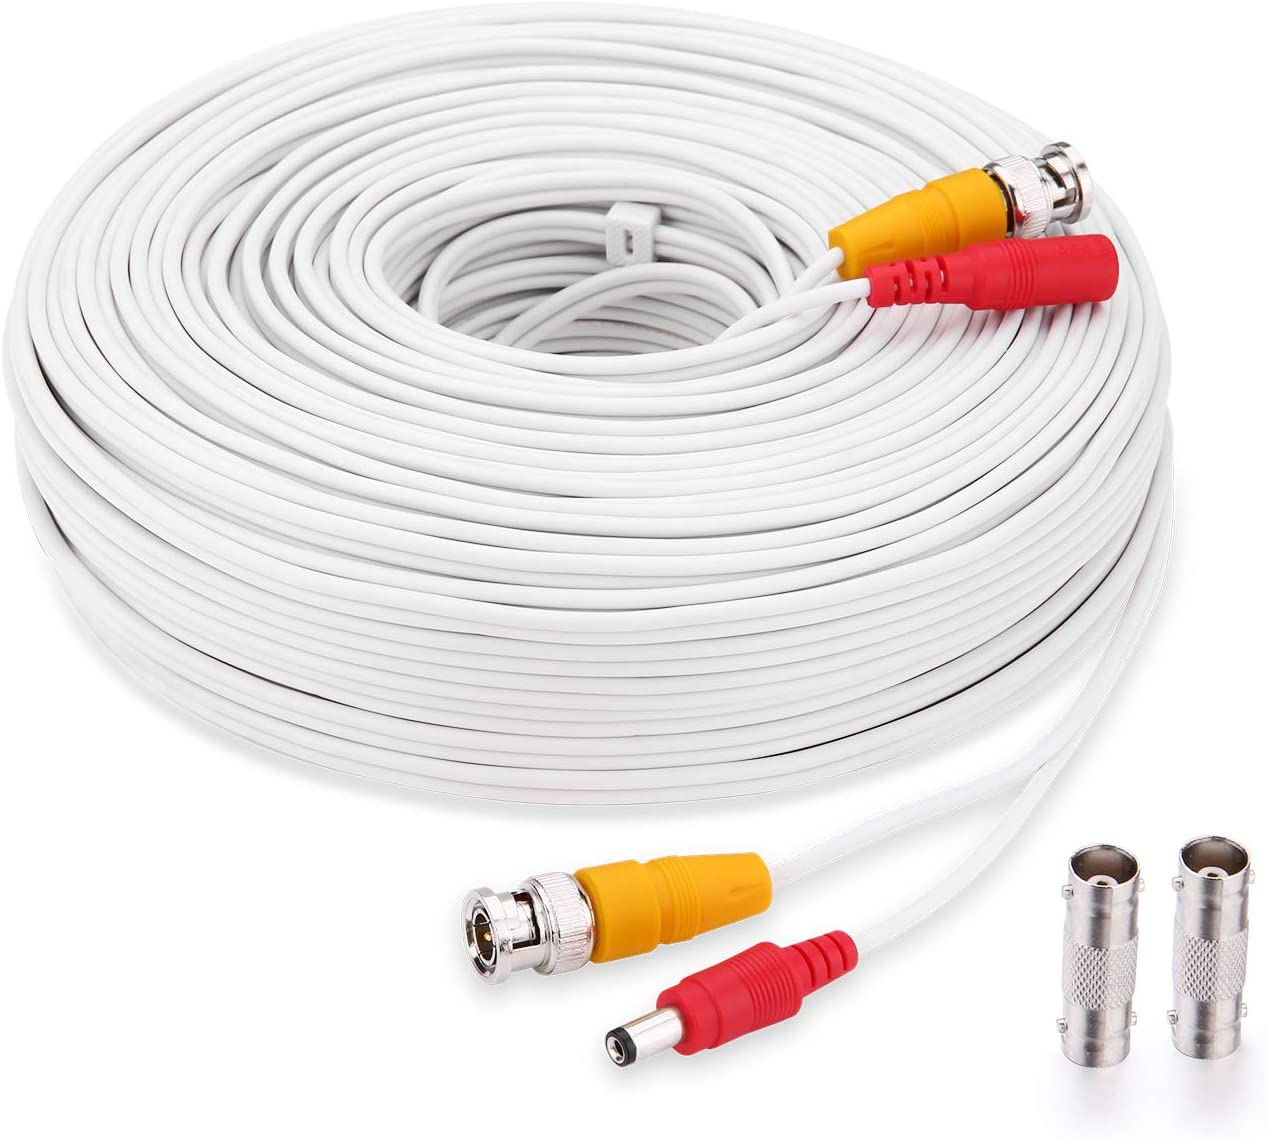 Bnc Cable,150ft CCTV Security Camera CableAll-in-One Siamese Video and Power Security Camera Extension Cord with 2 Female Connectors for All Max 5MP HD CCTV DVR Surveillance System